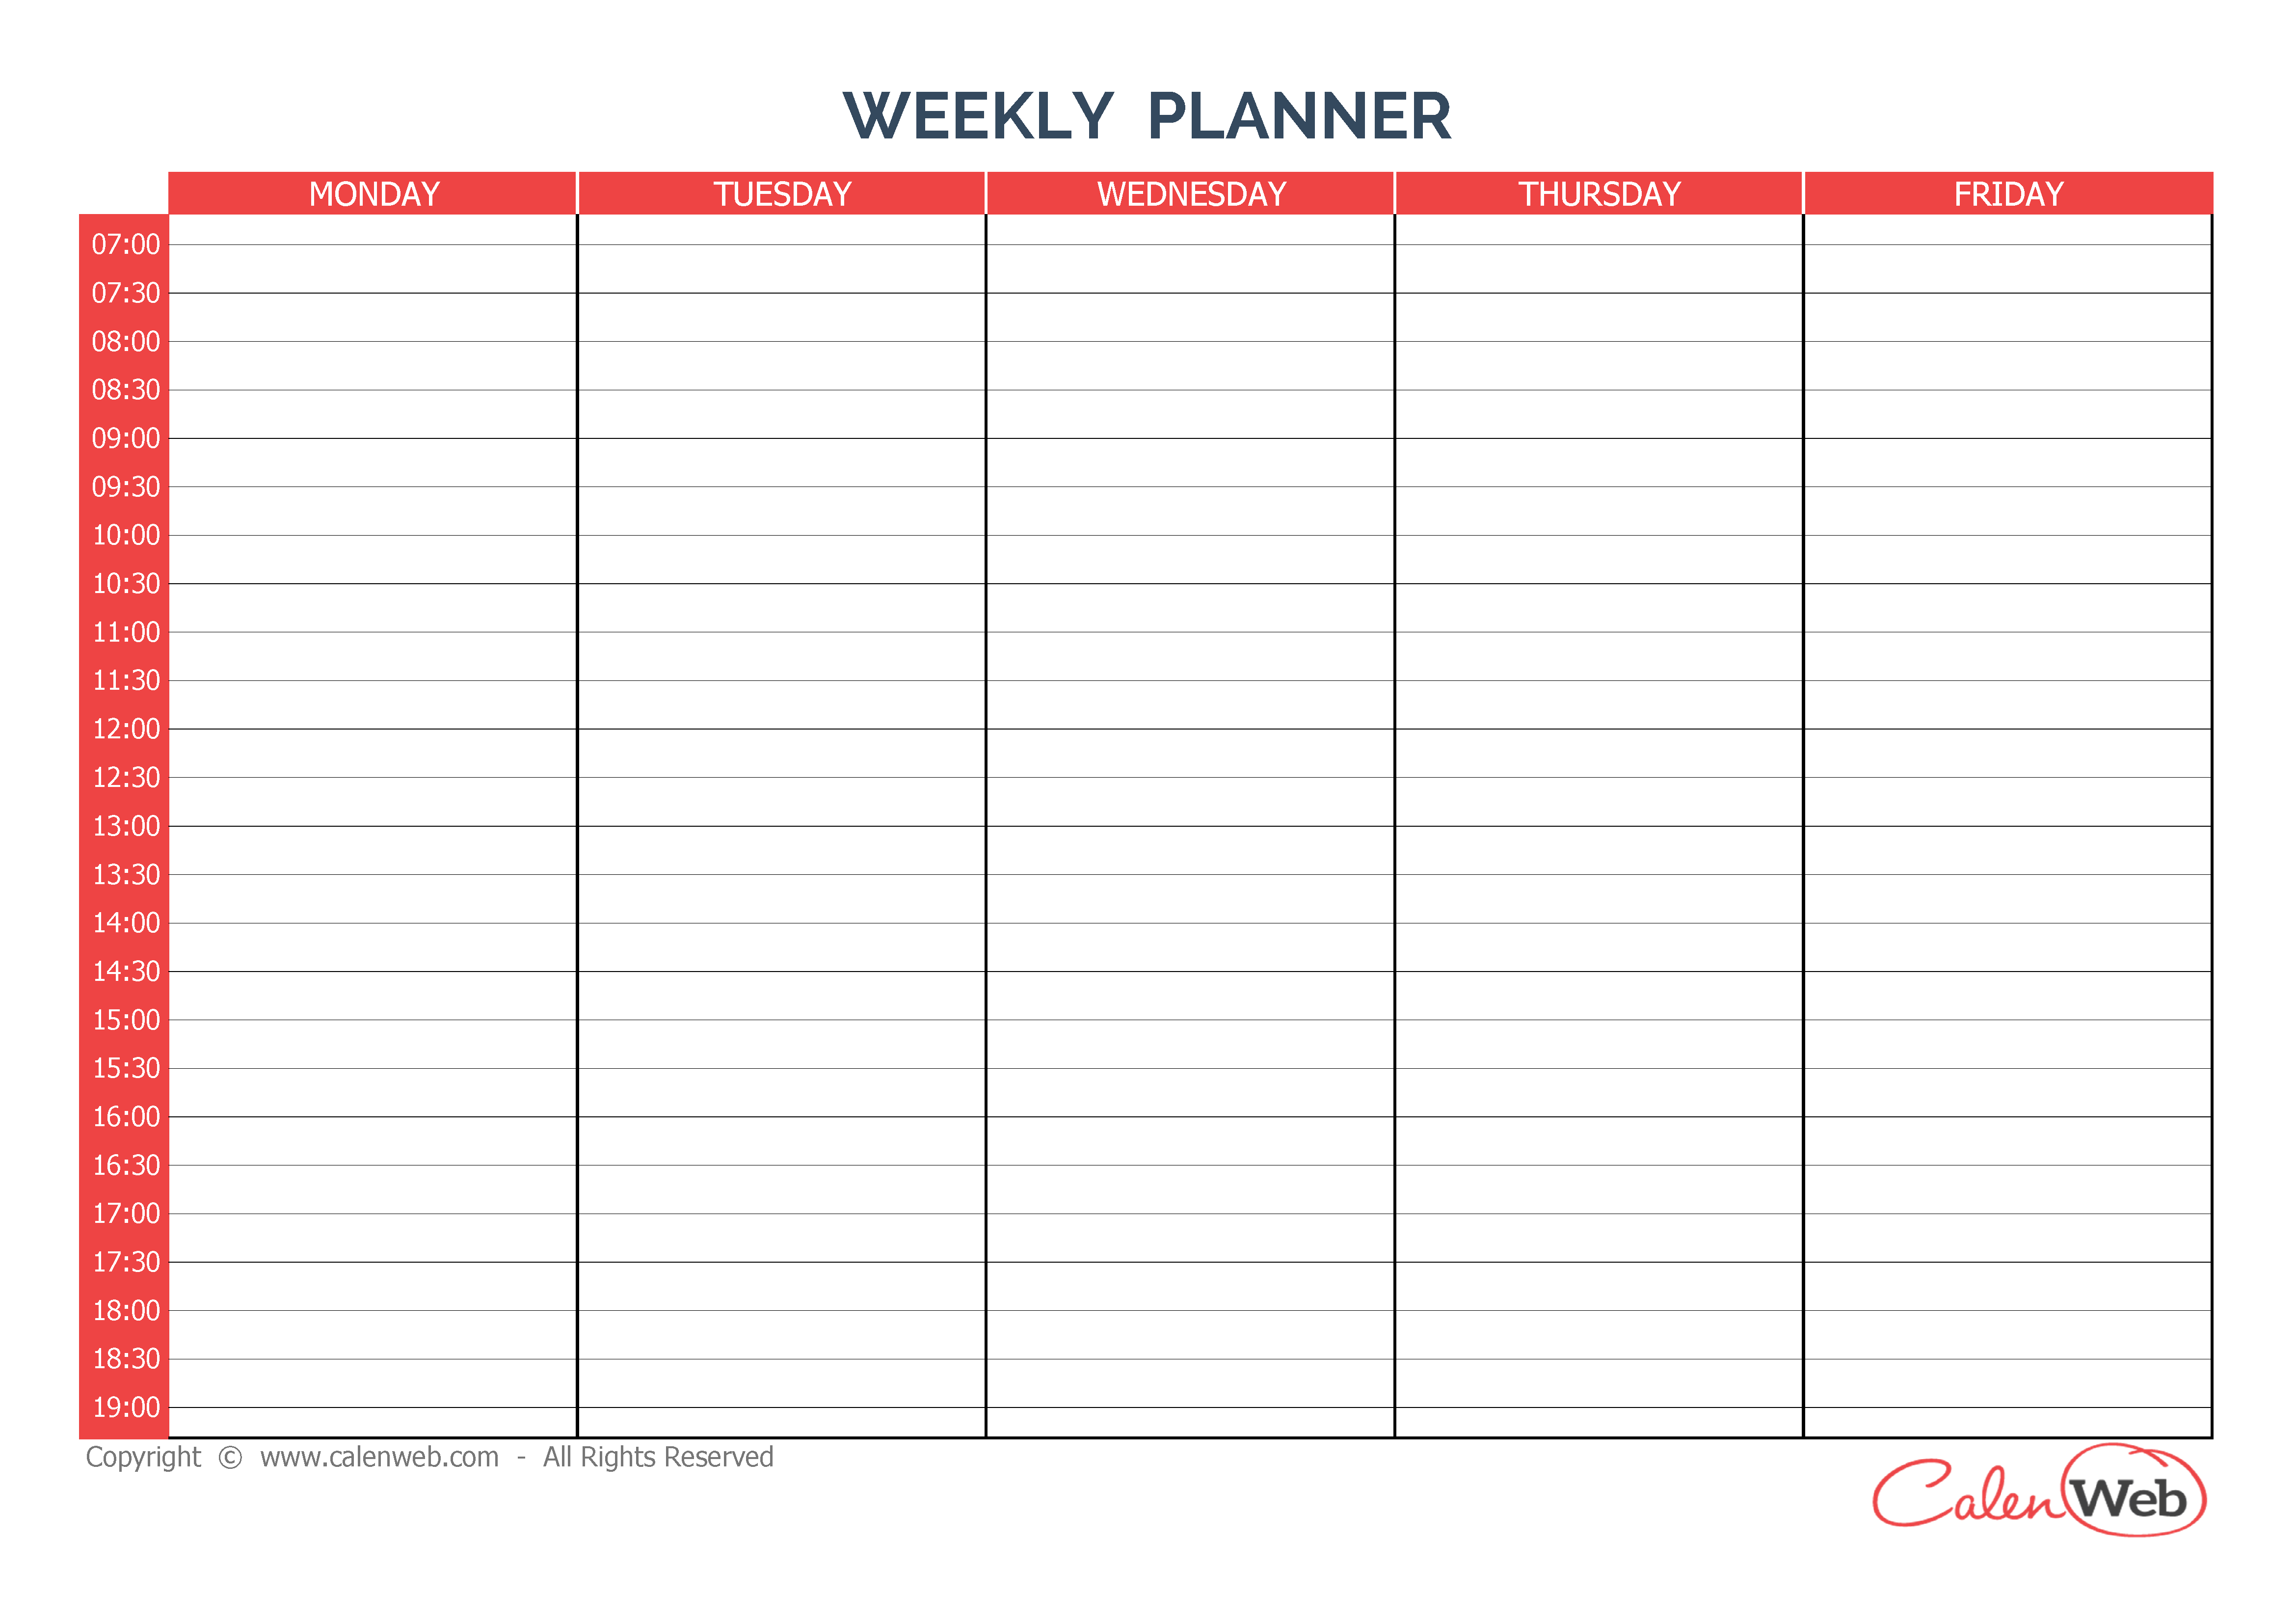 Weekly Planner 5 Days A Week Of 5 Days  Calenweb throughout 5 Day Weekly Calendar Template